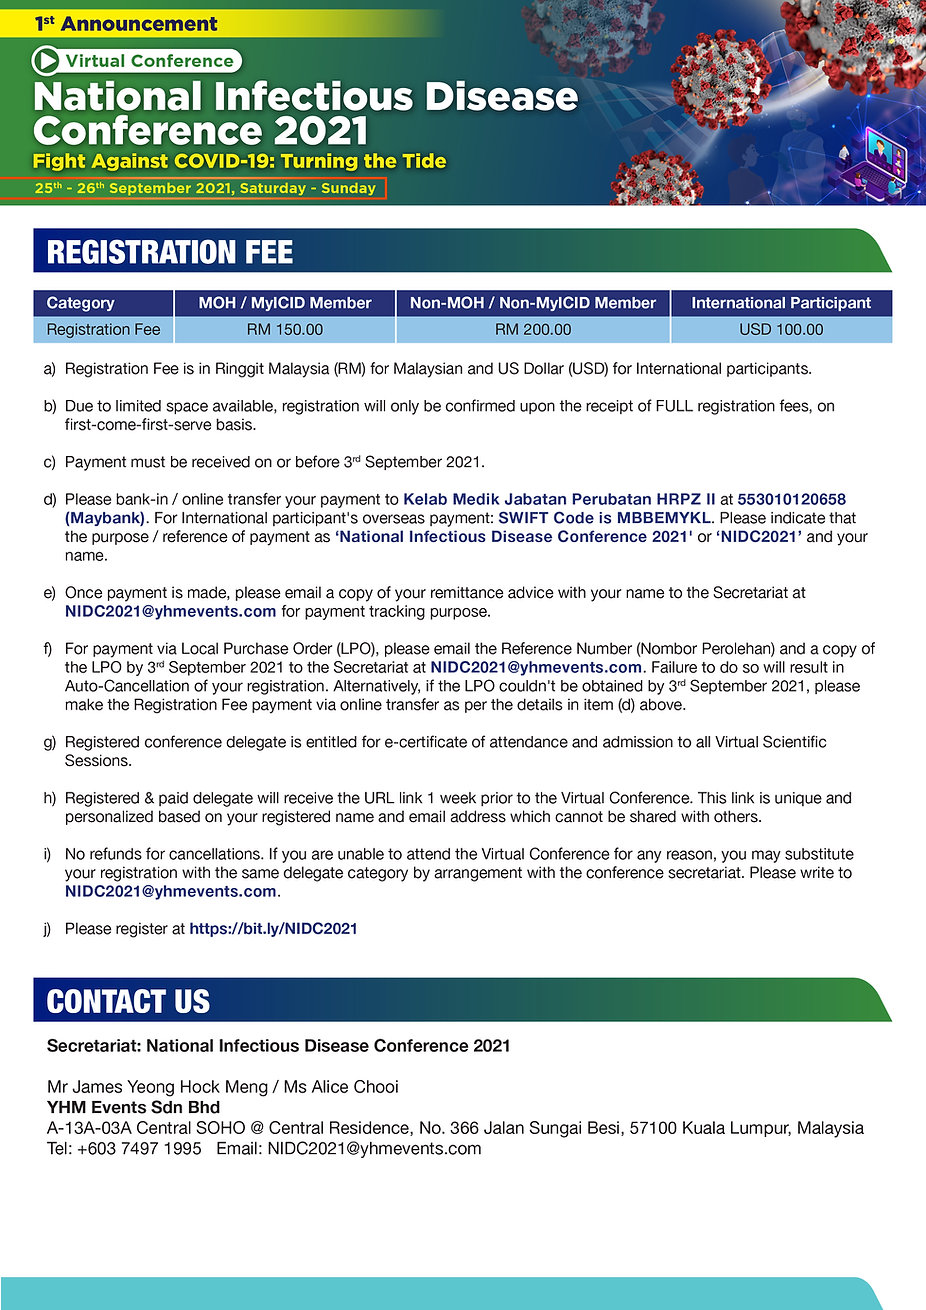 1st Announcement_NIDC 2021_Page 4.jpg